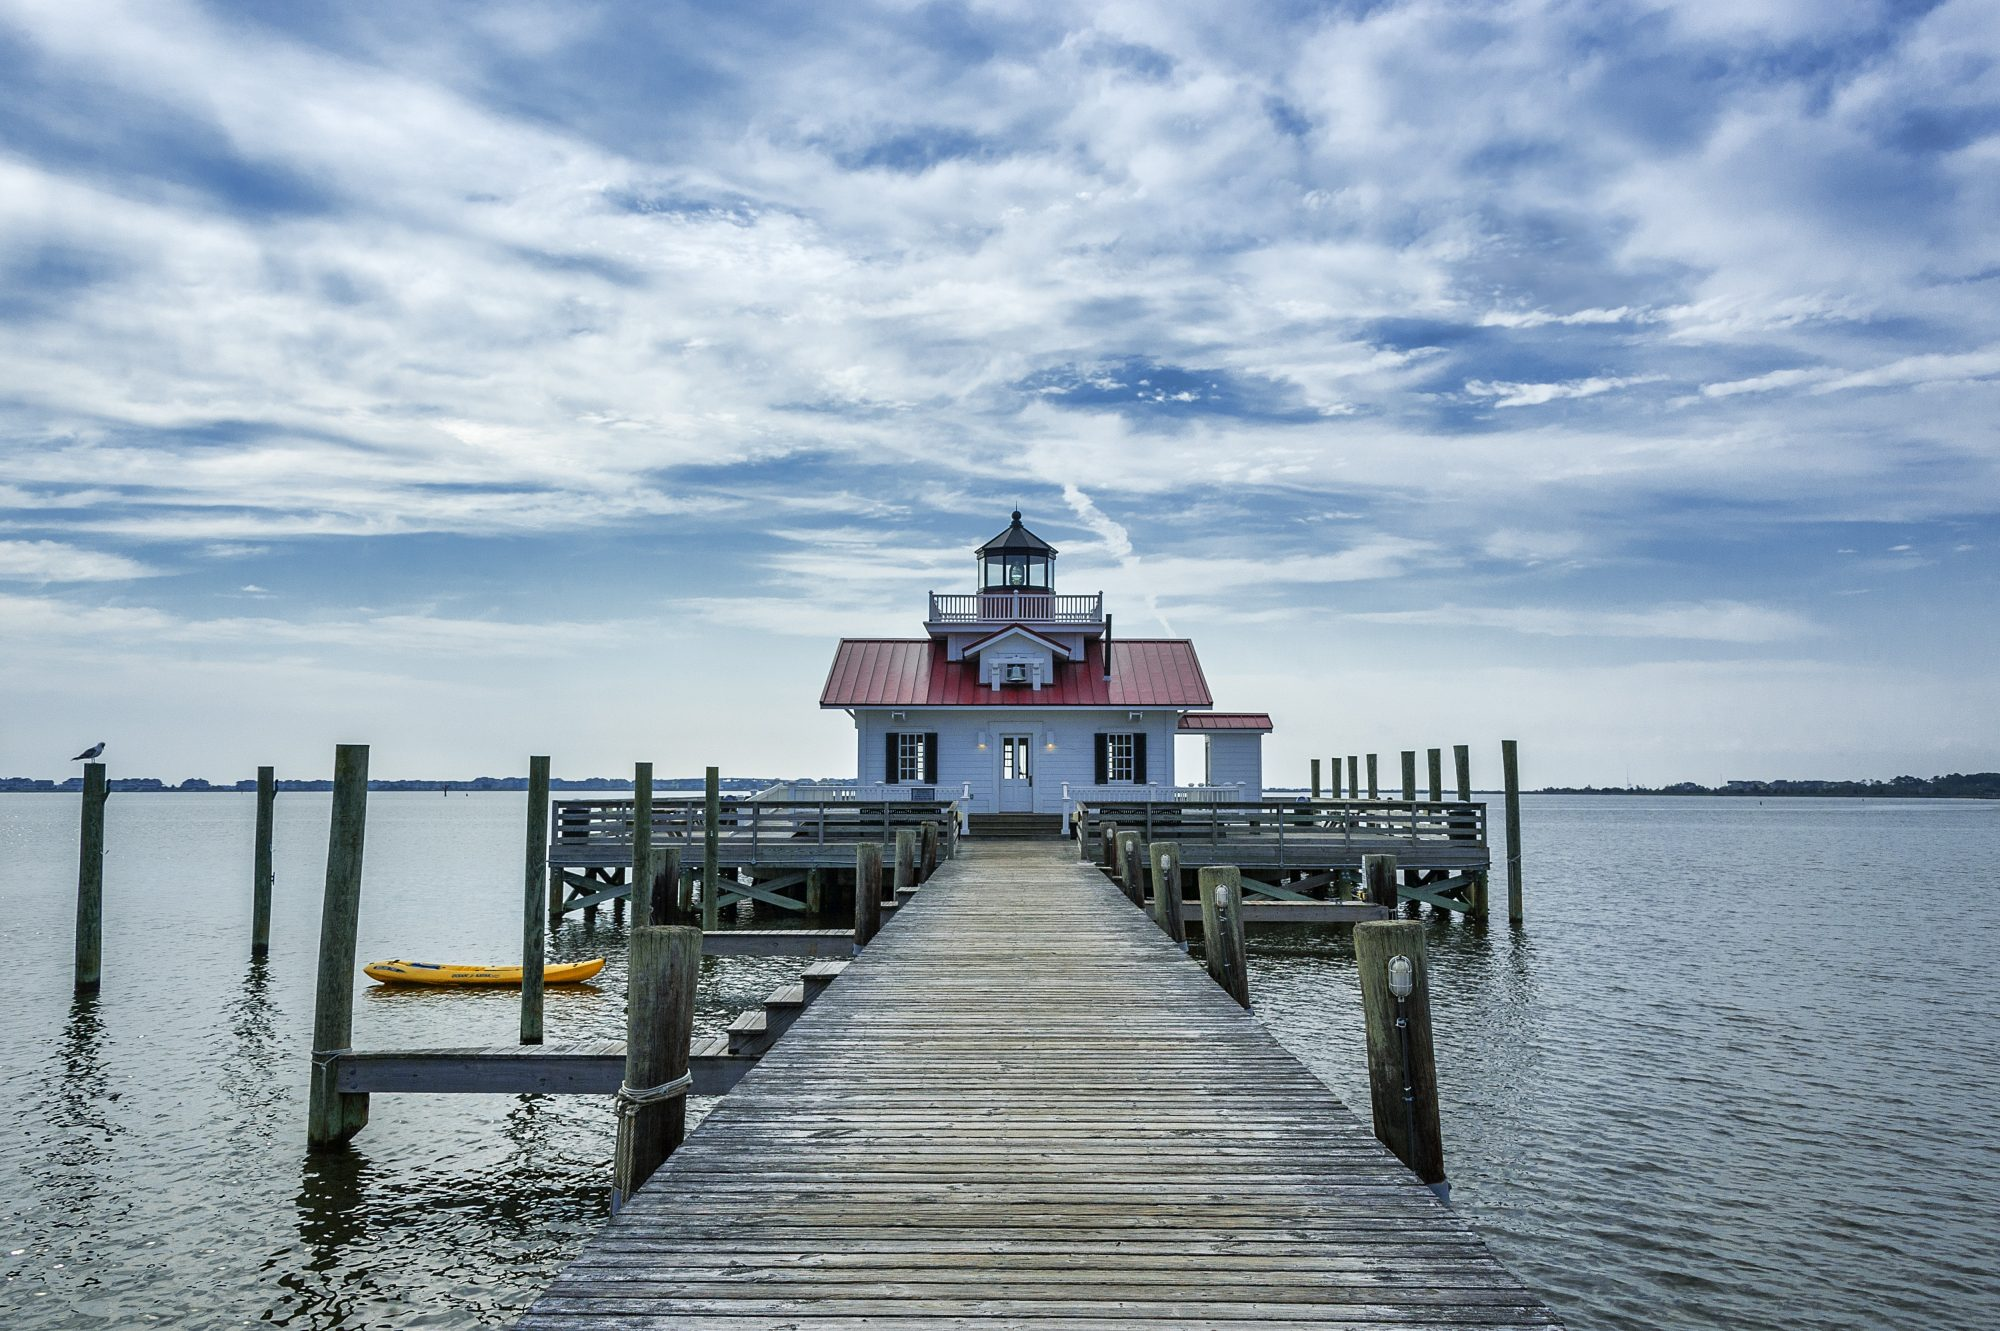 18. Manteo, North Carolina